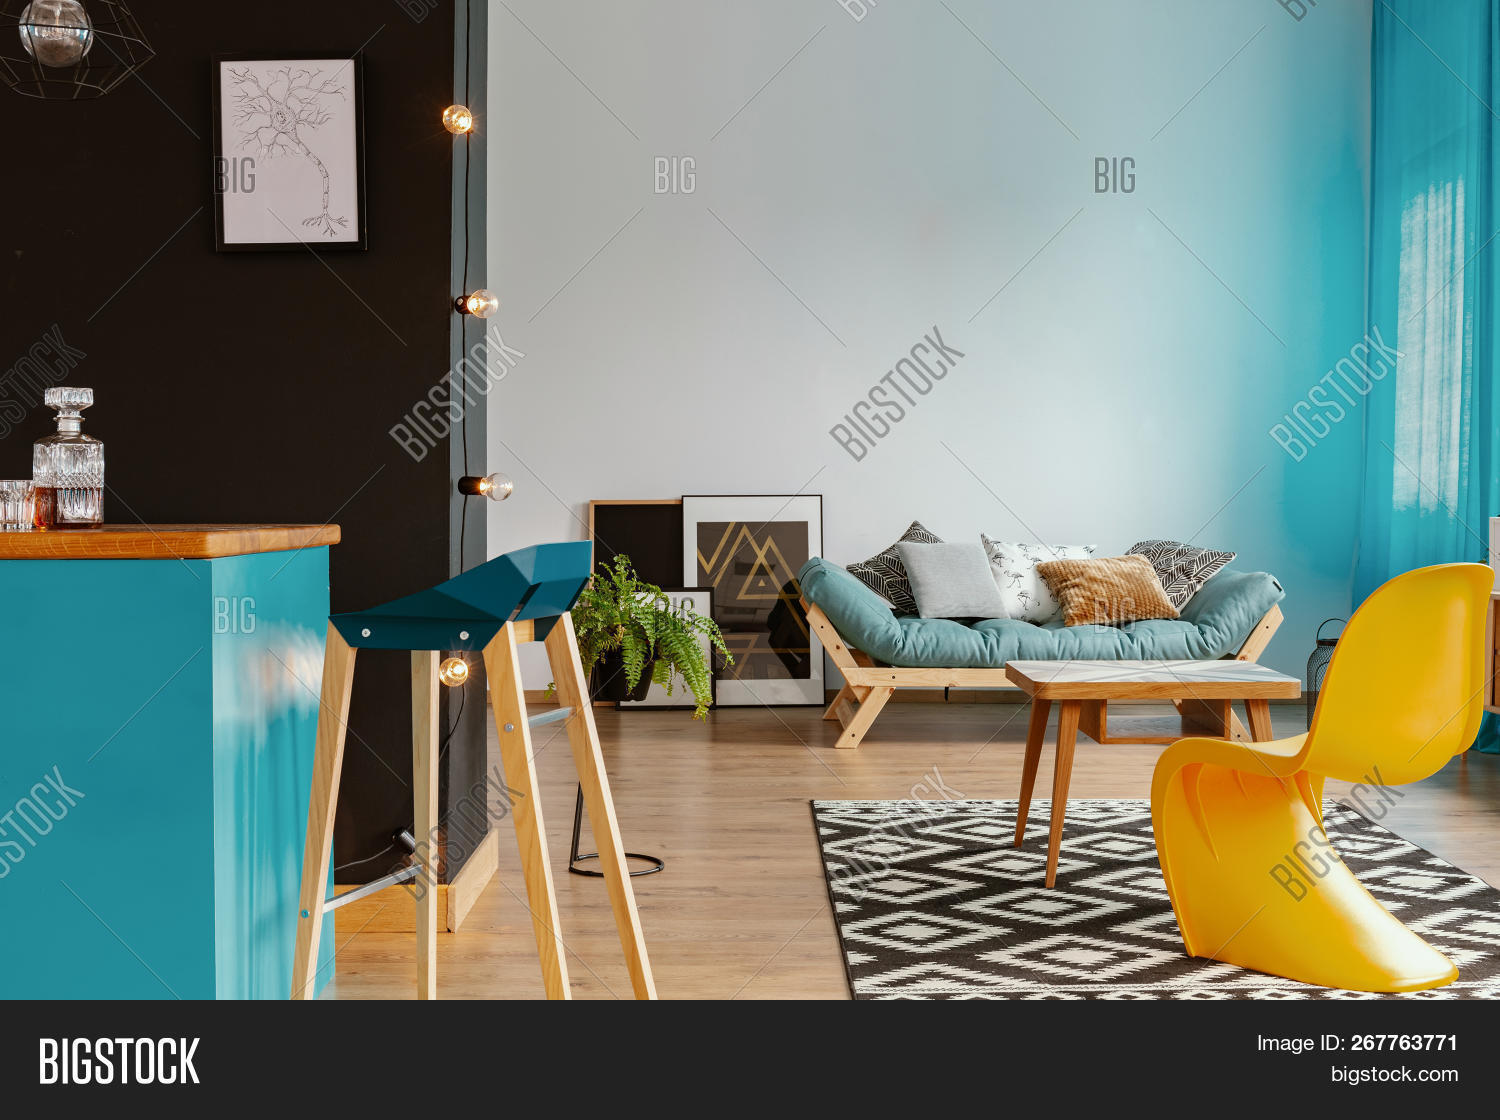 Black White Living Image & Photo (Free Trial) | Bigstock